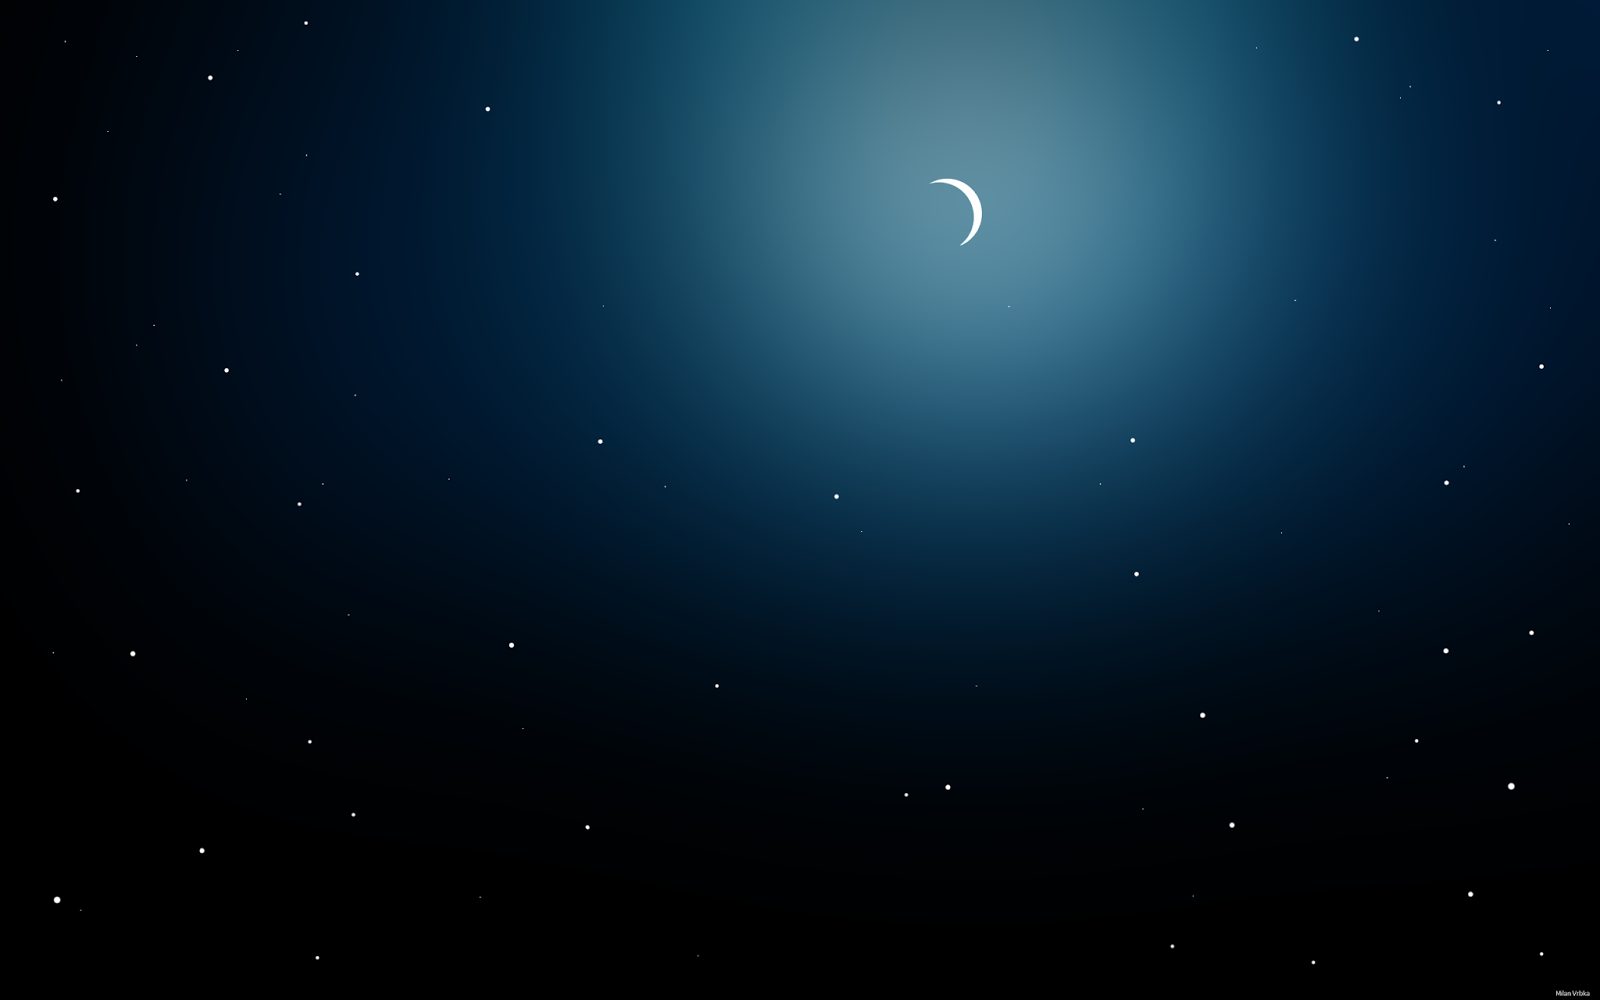 free night sky wallpaper - wallpapersafari